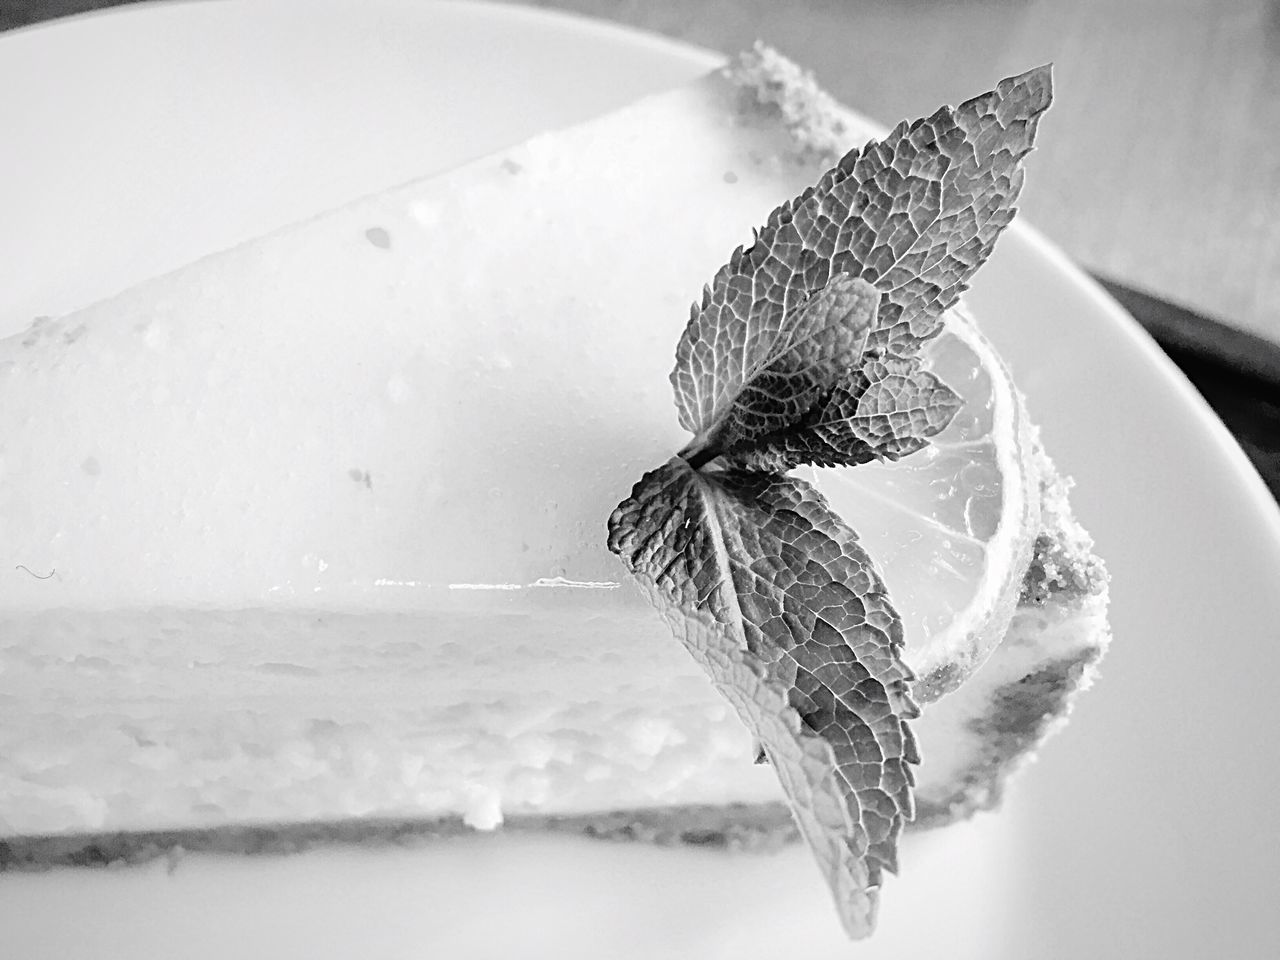 Cheesecake. Food Foodphotography Dessert Cheese Cake Dessertlover Black And White Dessertoftheday